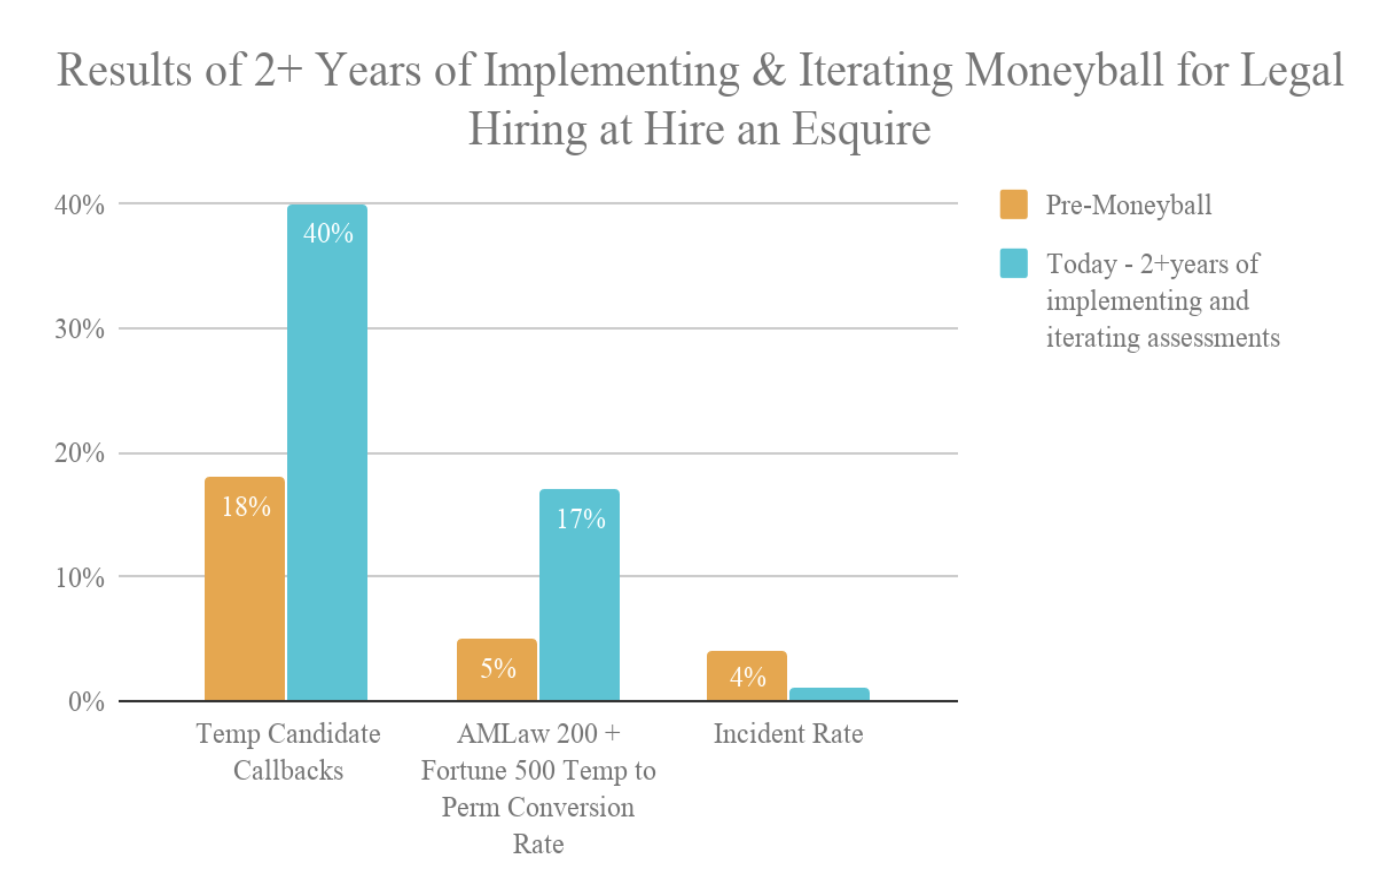 Temporary-to-permanent employee conversions increased from 5% to 17% using the Moneyball method.